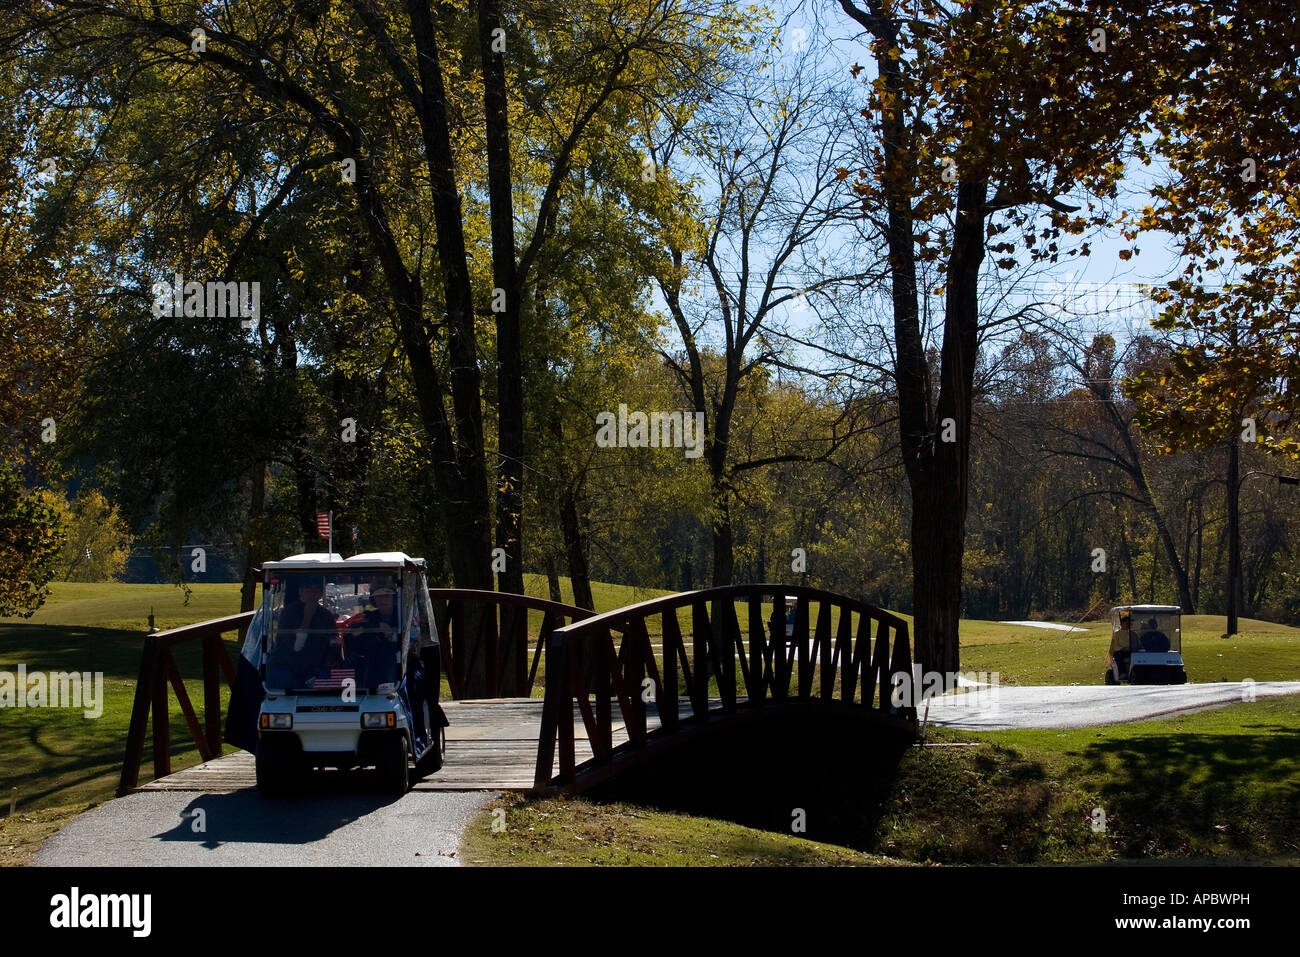 Golfers make their way along a path in their golf cart at Kingswood Golf Cart in Bella Vista, Ark. Stock Photo